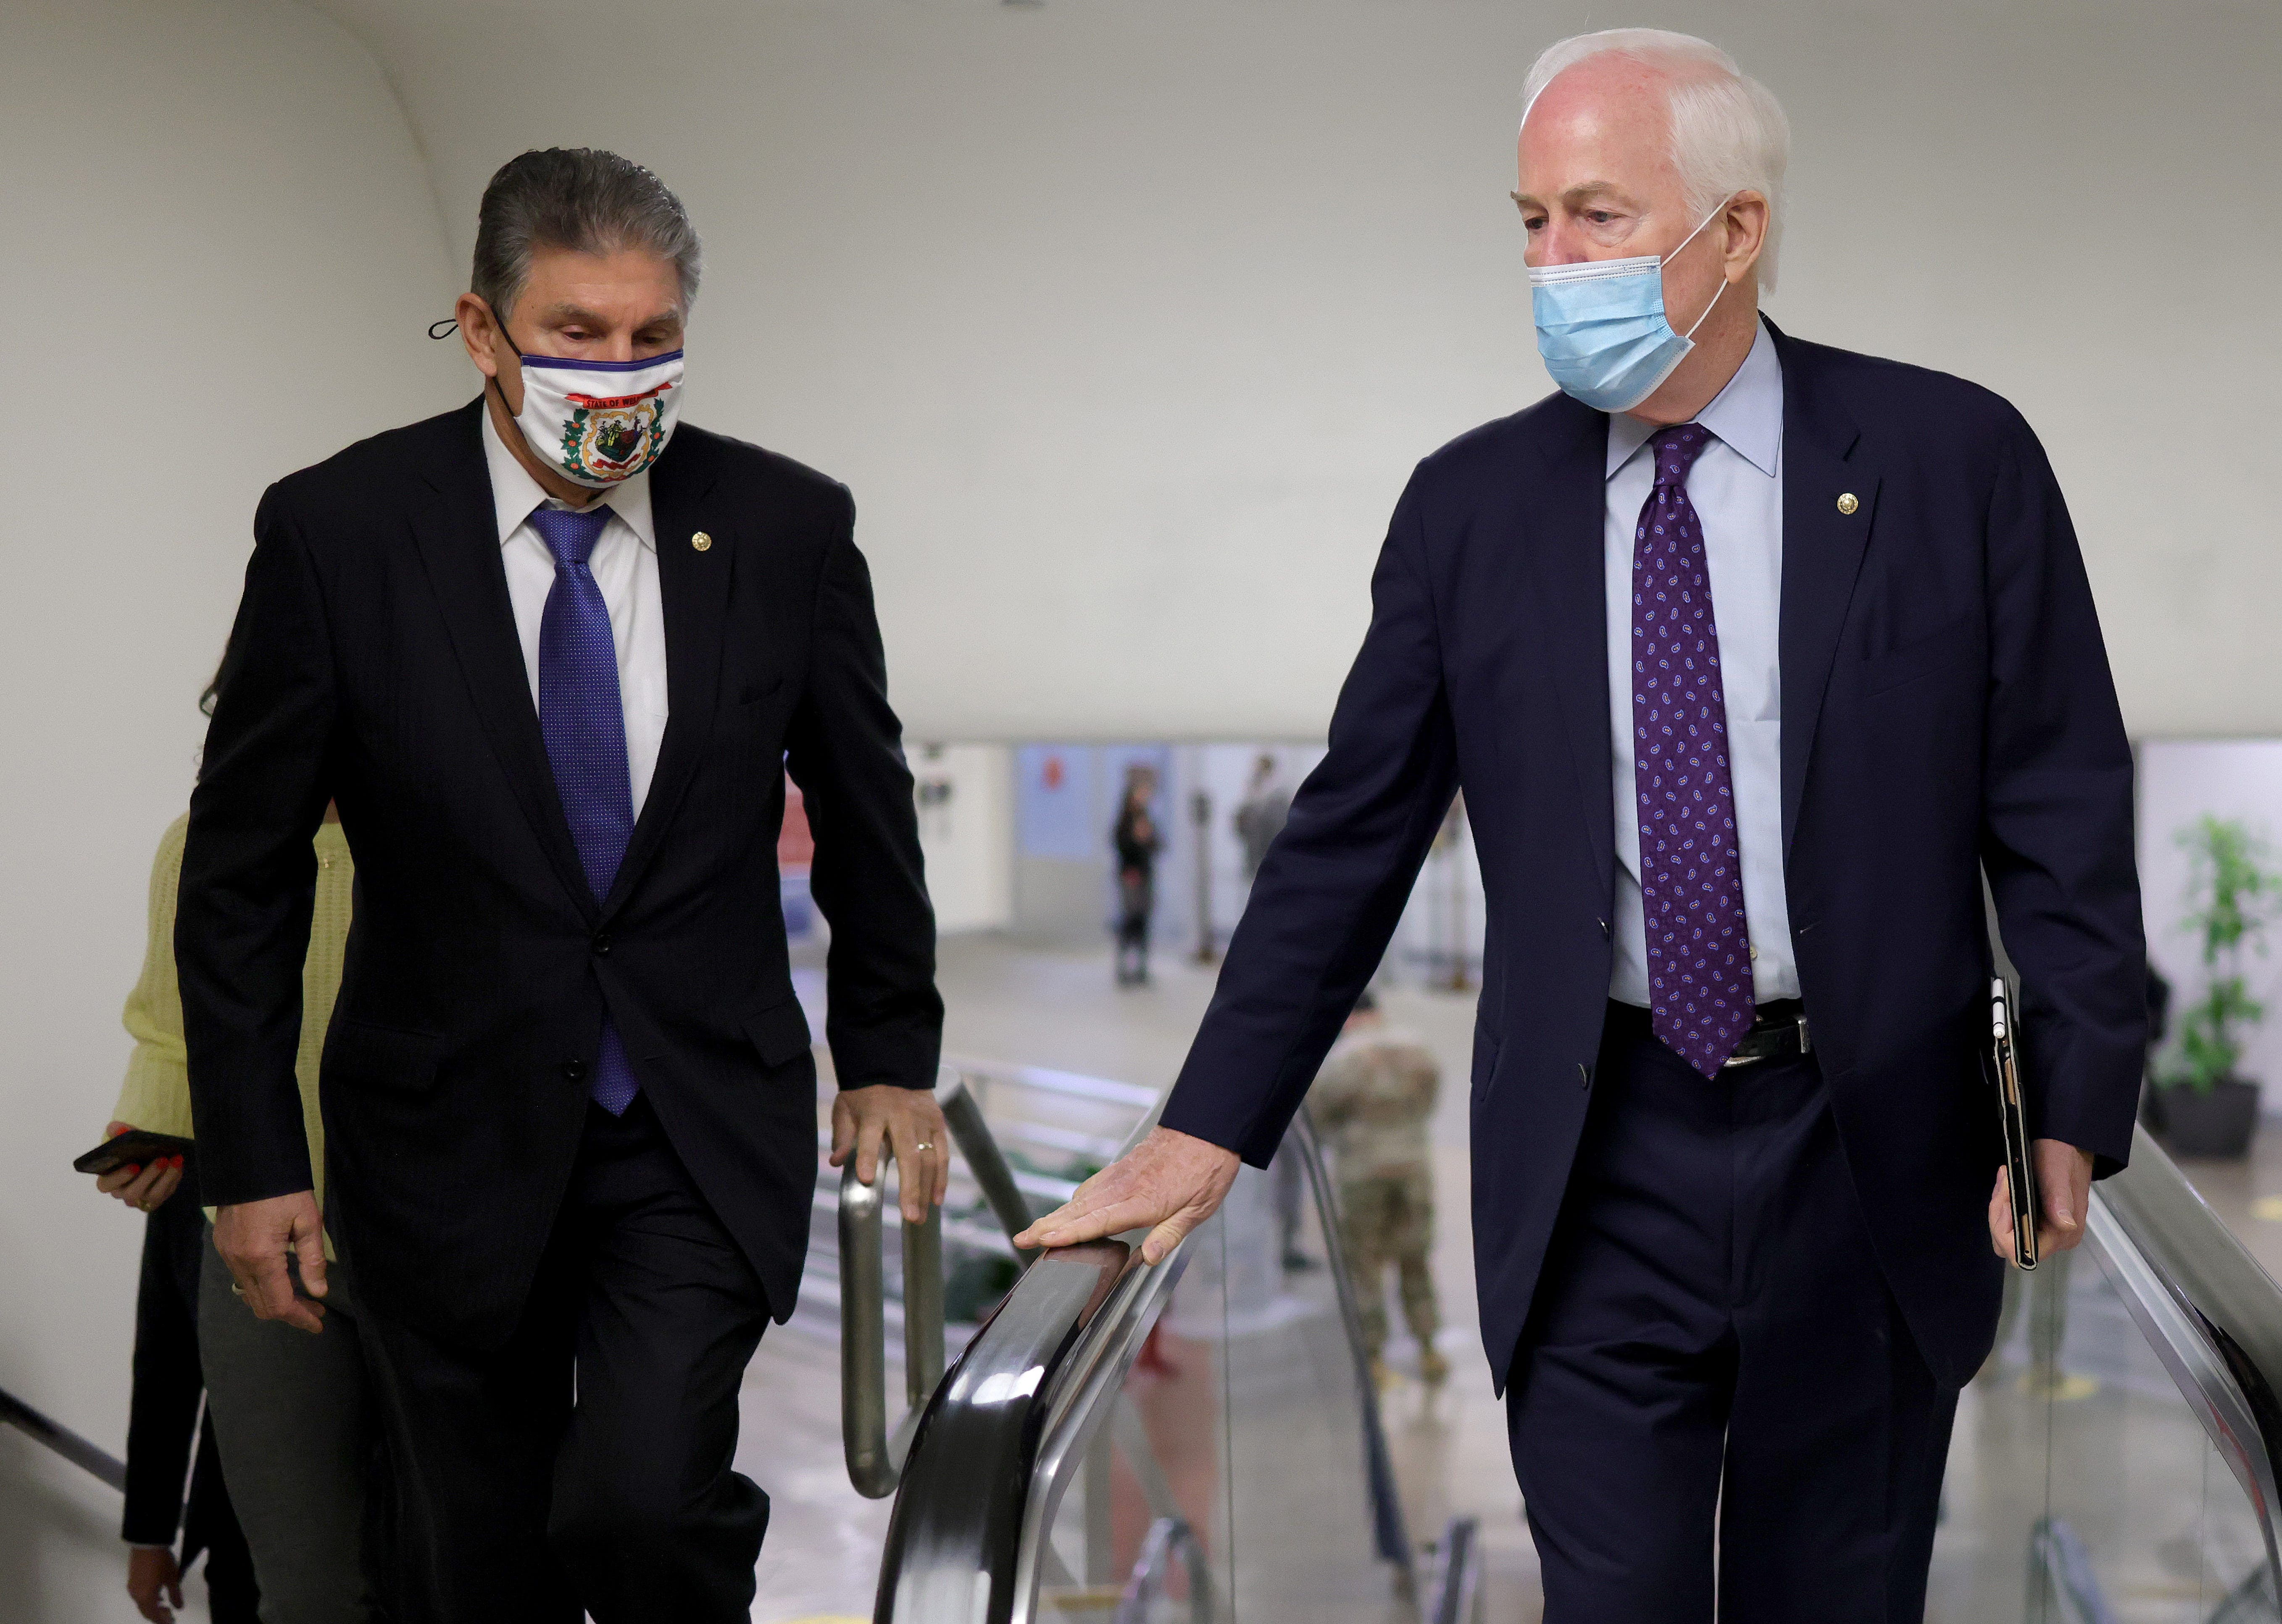 Live stimulus updates: Senate restarts proceedings on Biden's stimulus bill after long delay